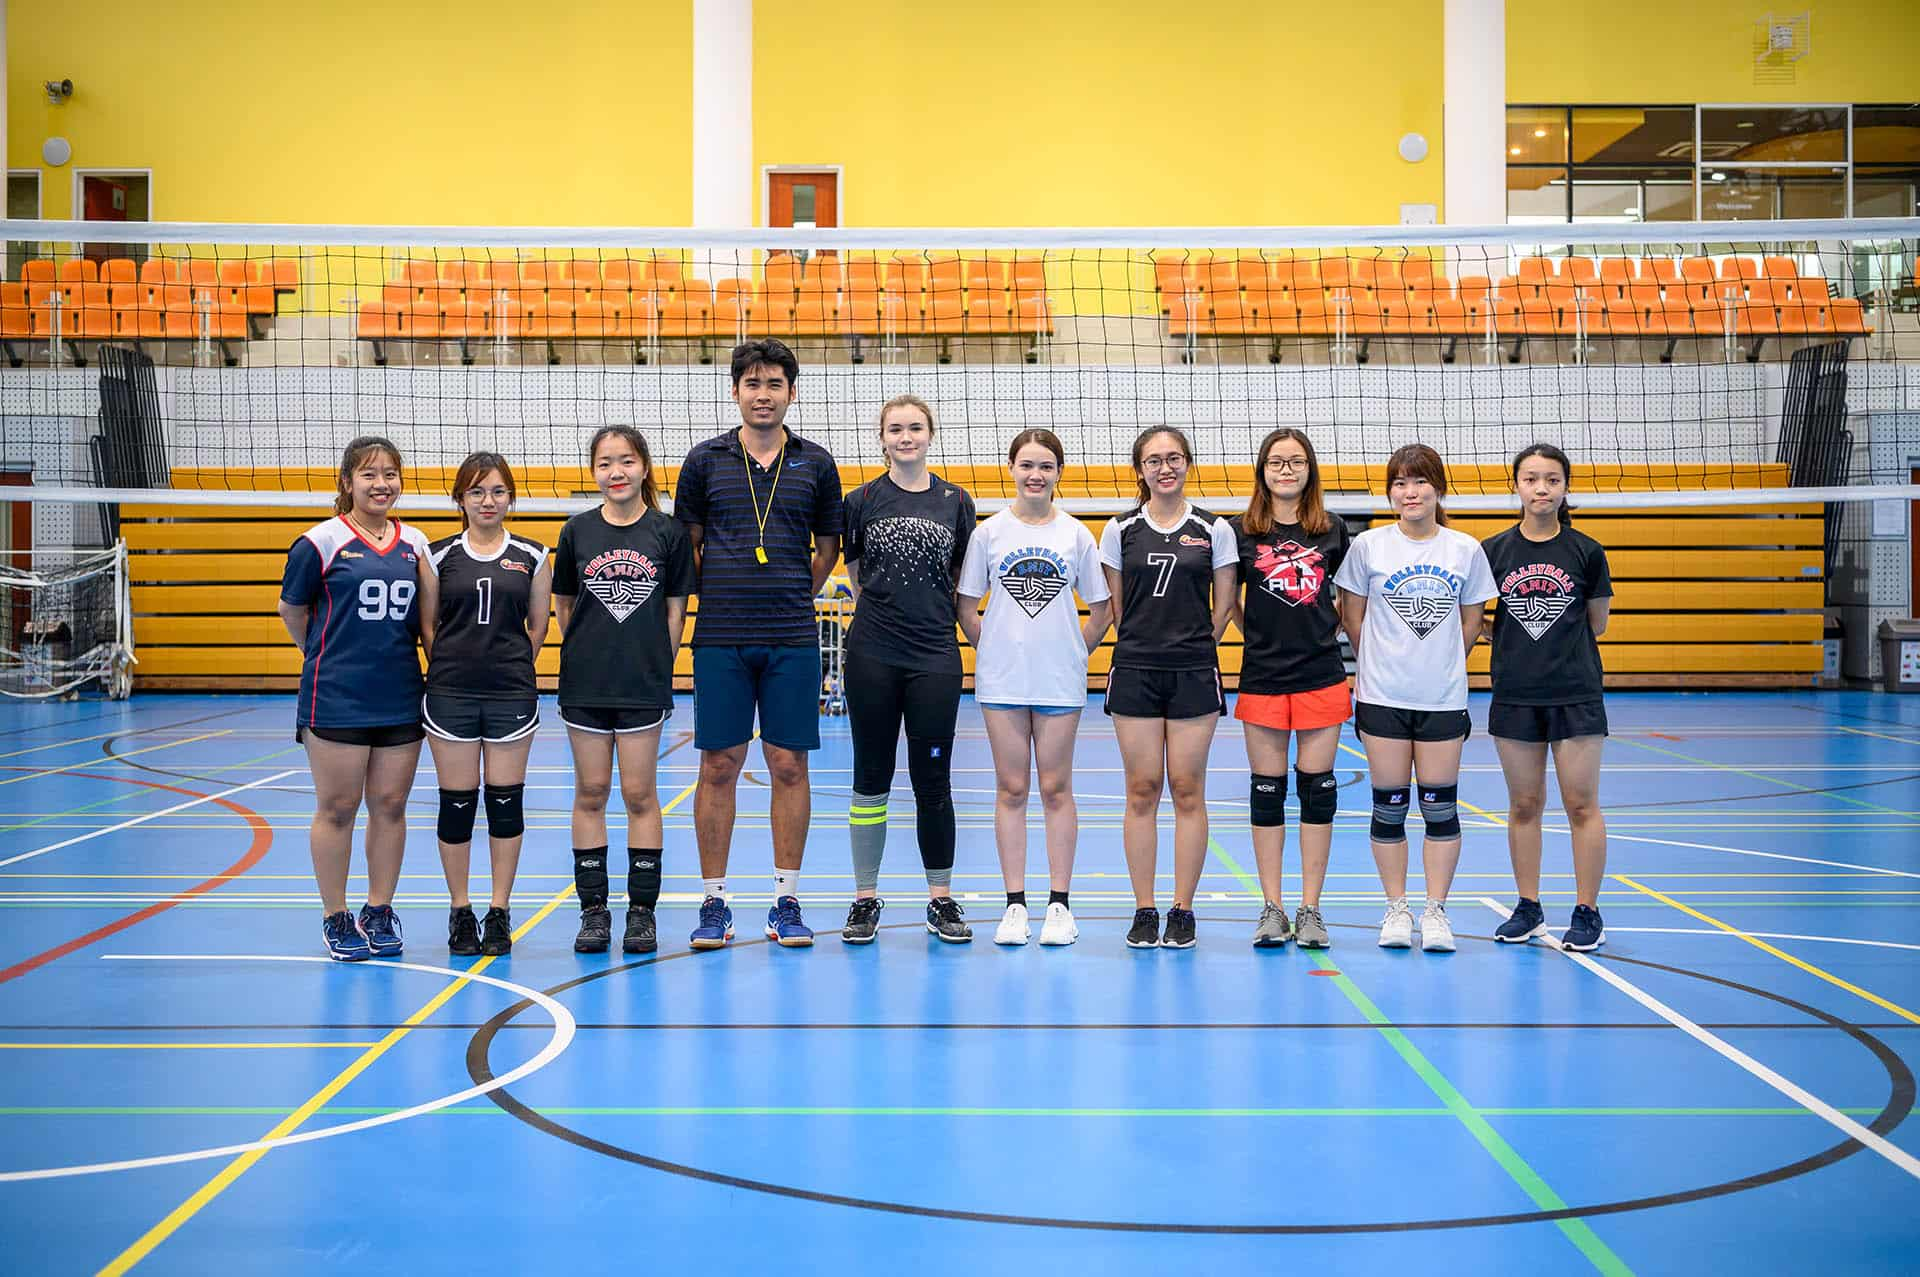 sgs volleyball club